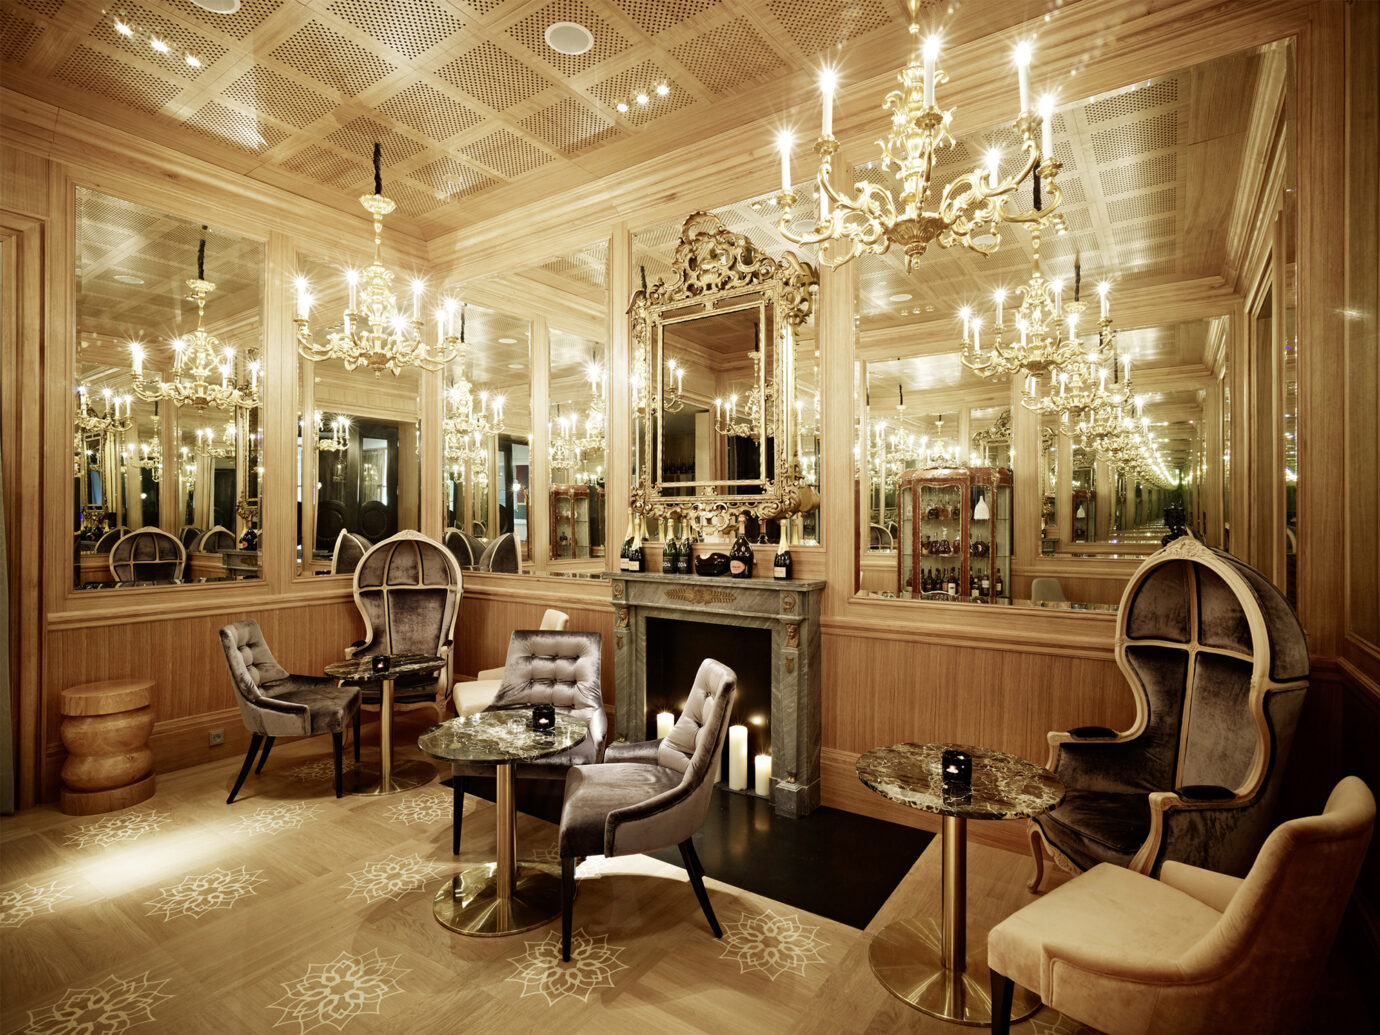 Bar at Hotel San Souci, Vienna, Austria